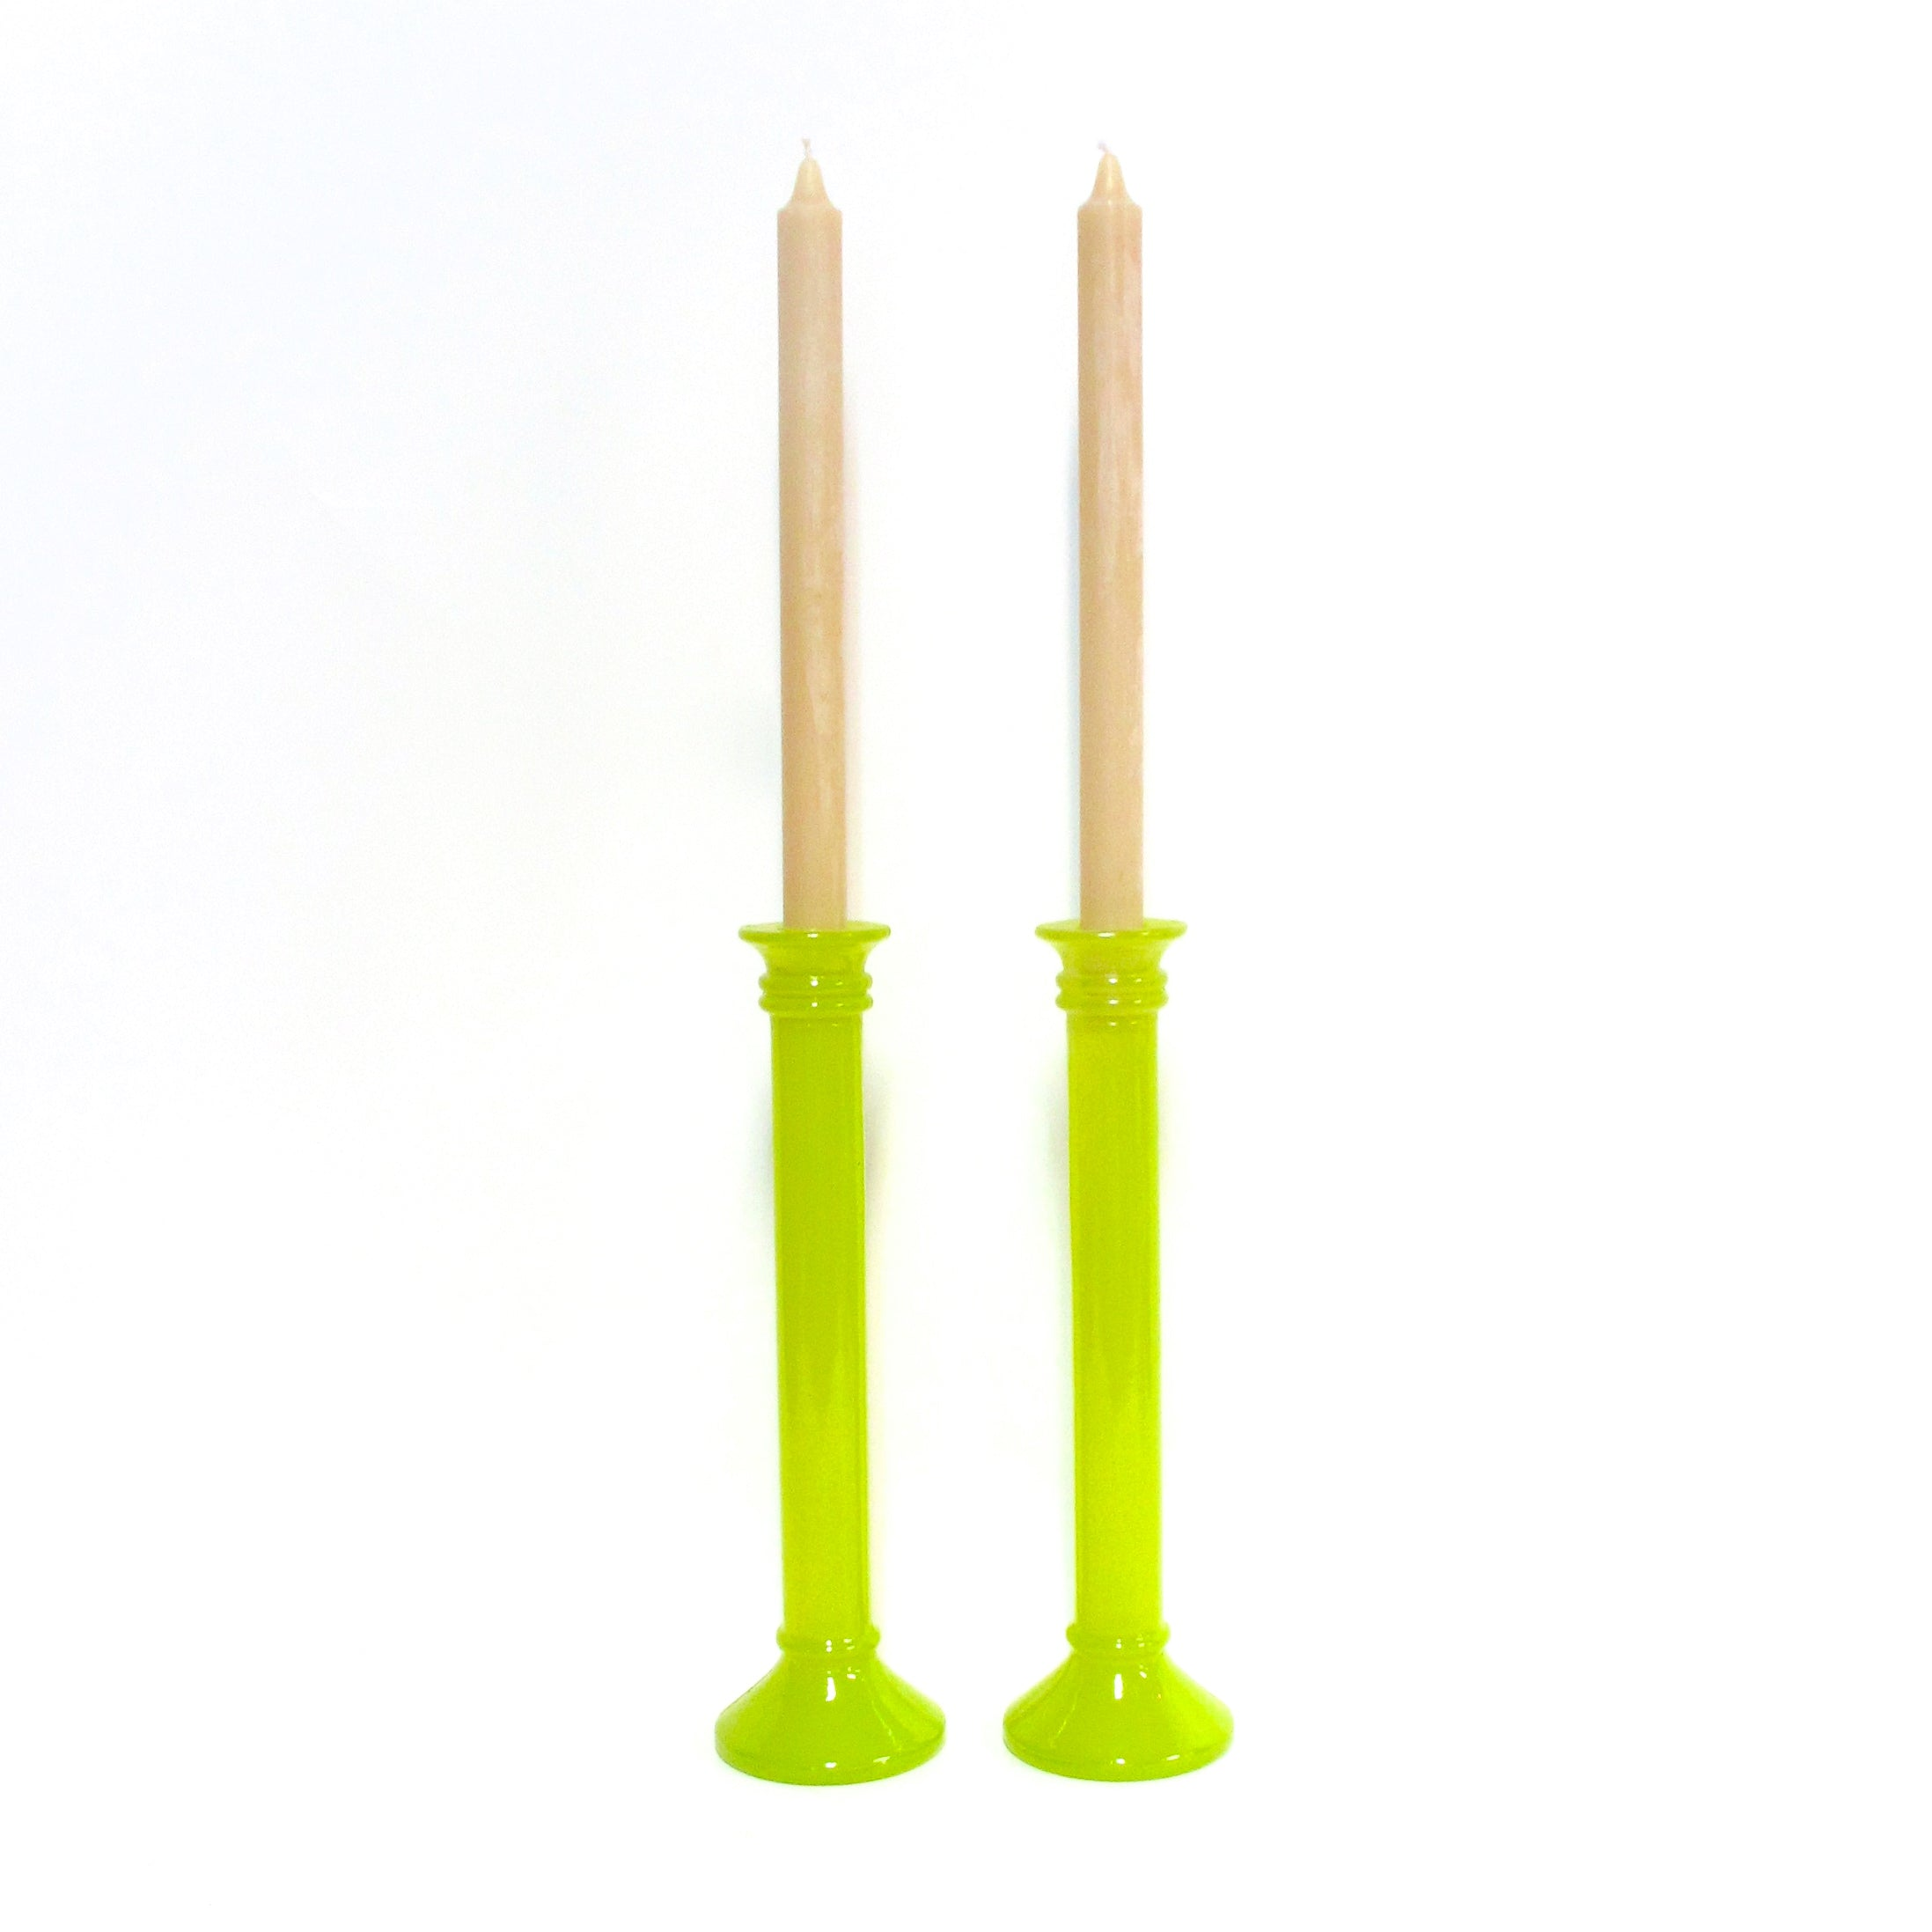 Recycled glass candlesticks from Spain in chartreuse for Queen B beeswax candles